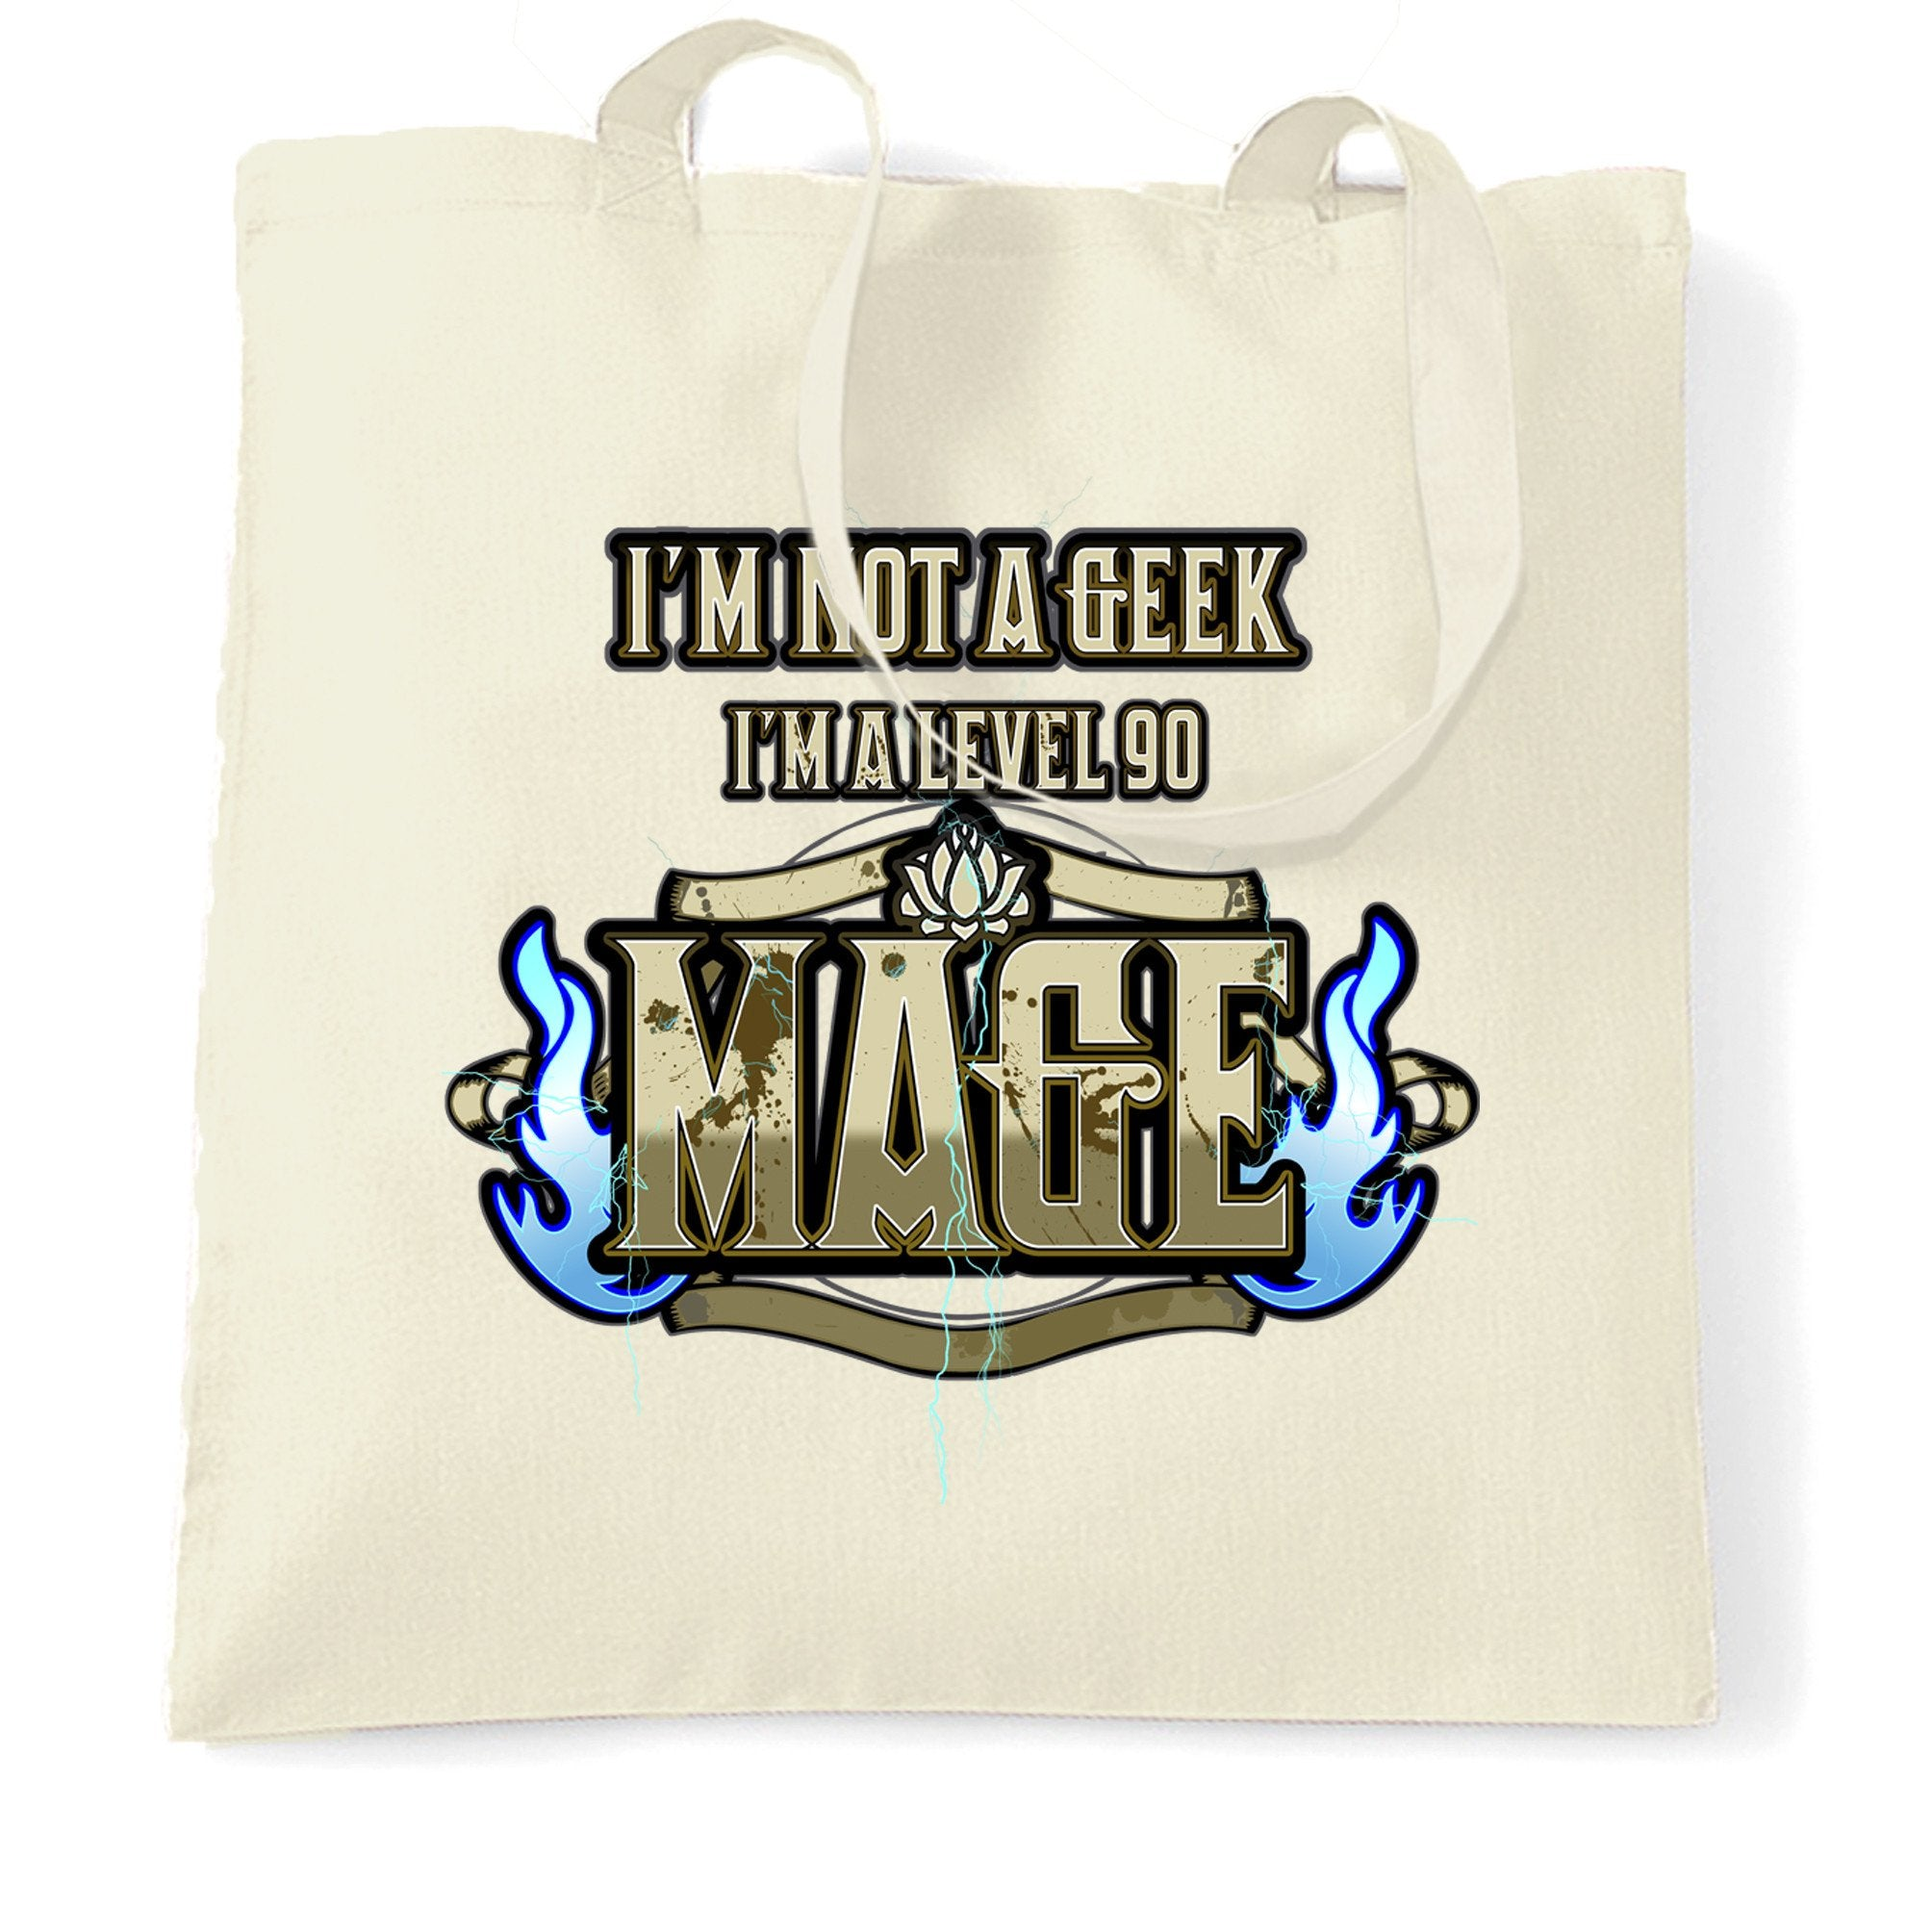 I'm Not A Geek Tote Bag I'm A Level 90 Mage